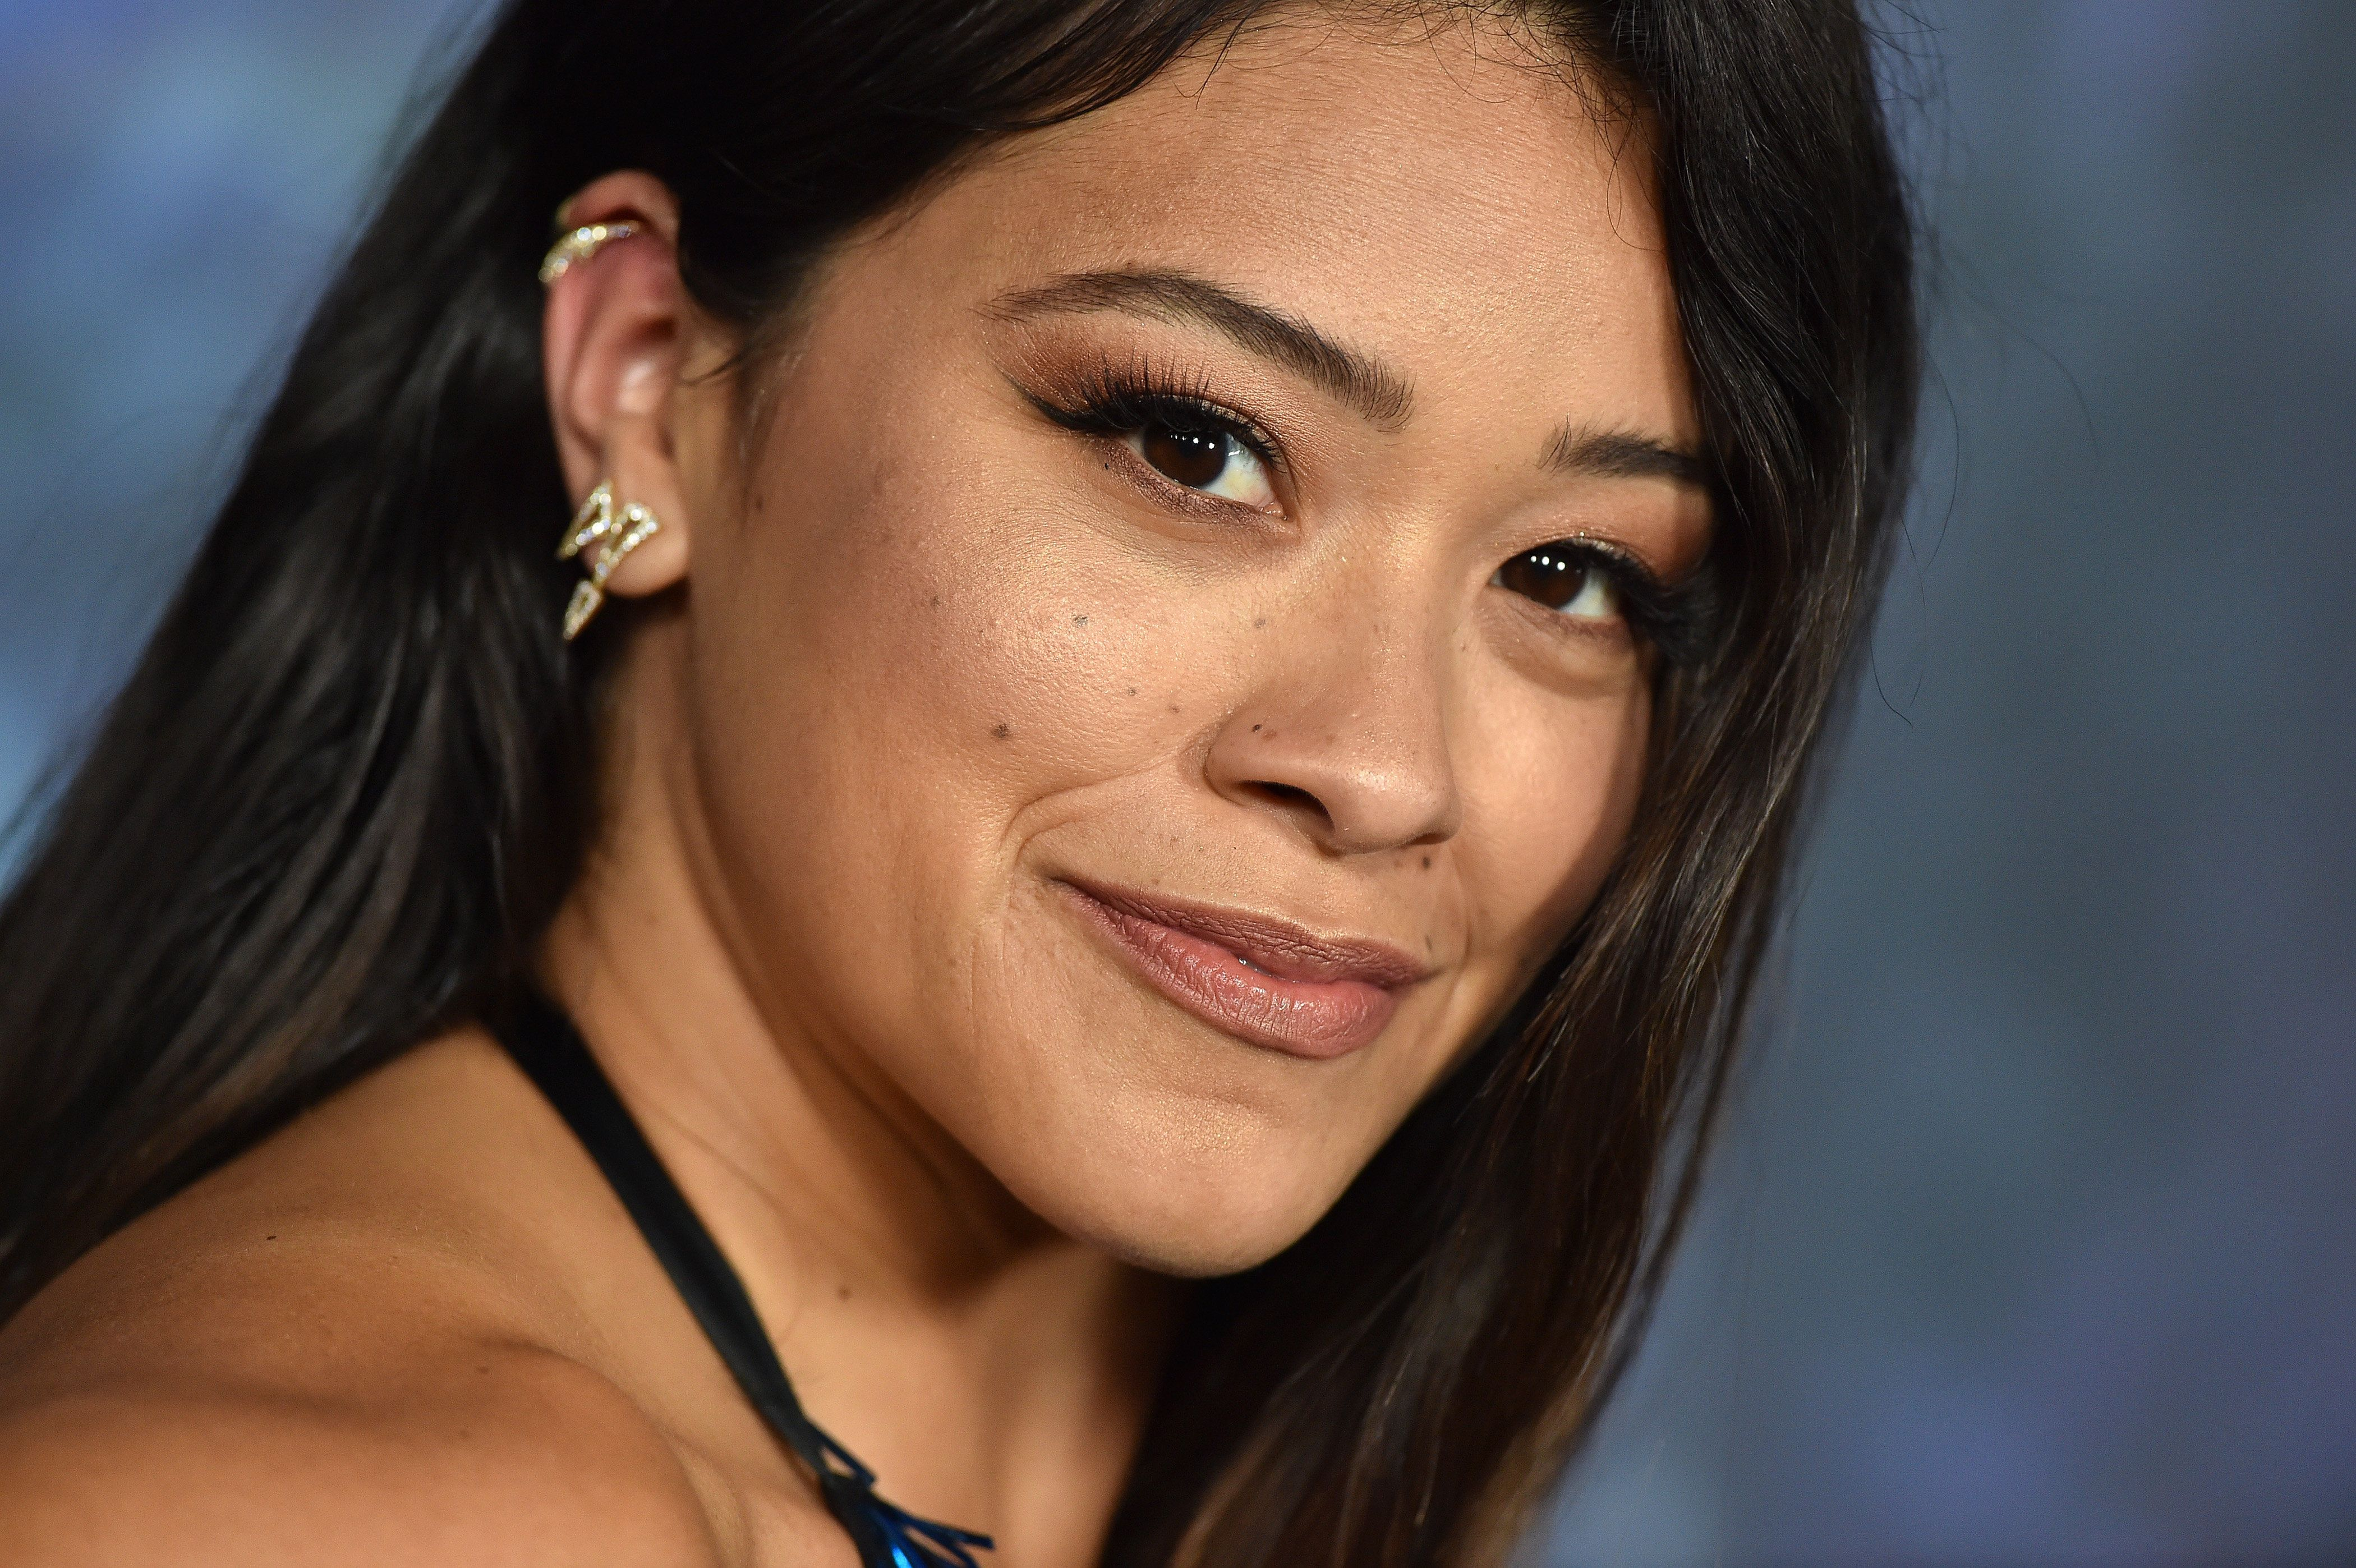 WESTWOOD, CA - FEBRUARY 13:  Actress Gina Rodriguez attends the Los Angeles premiere of 'Annihilation' at Regency Village Theatre on February 13, 2018 in Westwood, California.  (Photo by Axelle/Bauer-Griffin/FilmMagic)